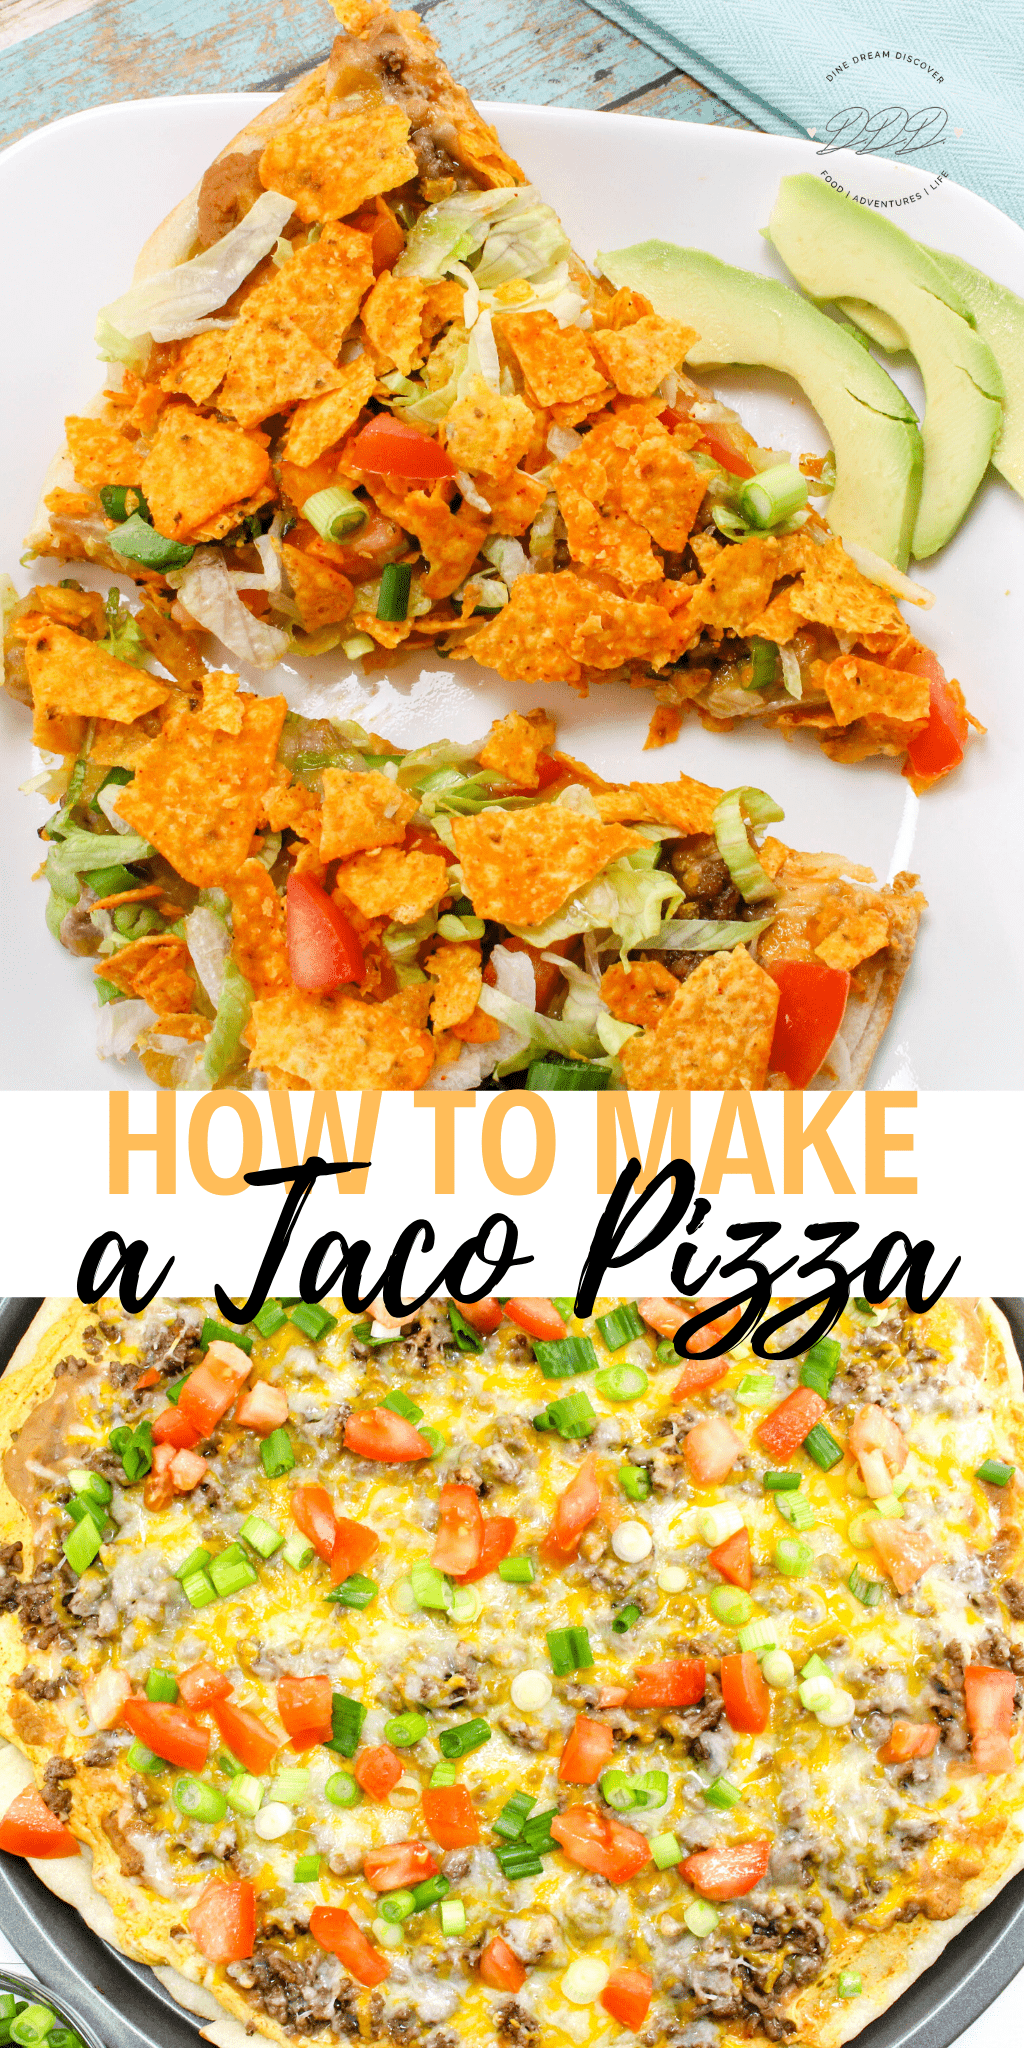 With simple ingredients, you can whip up this filling meal in under 30 minutes! This easy taco pizza is made with a Pillsbury Pizza crust and a tasty hit with the whole family. #DineDreamDiscover #recipe #dinner #easyrecipe #tacopizza #tacopizzarecipe #snacks #appetizers #tacos #TacoTuesday